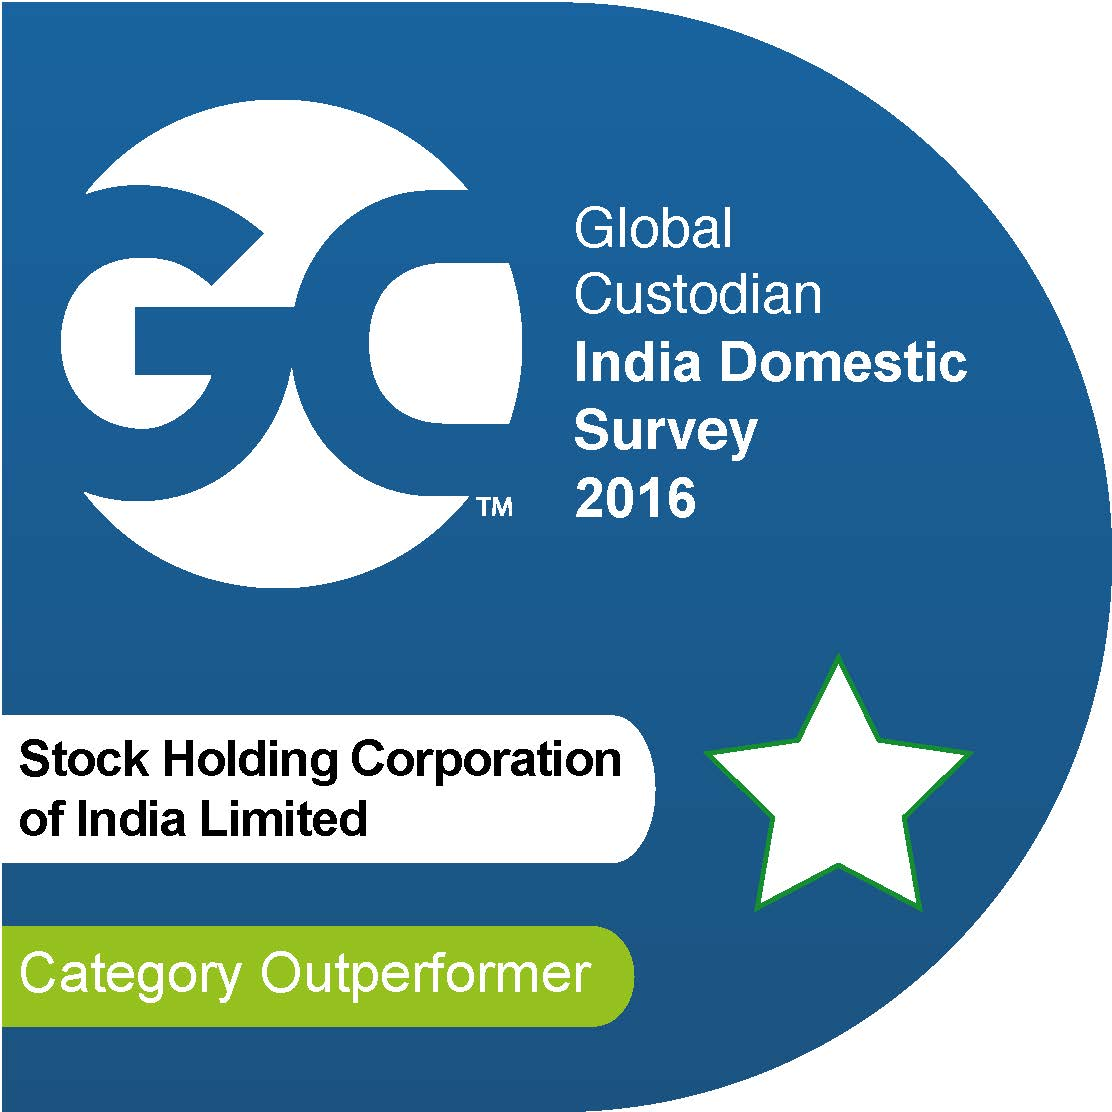 StockHolding Corporation Of India Limited Cao BEST CUSTODIAN BUSINESS EXCELLENCE